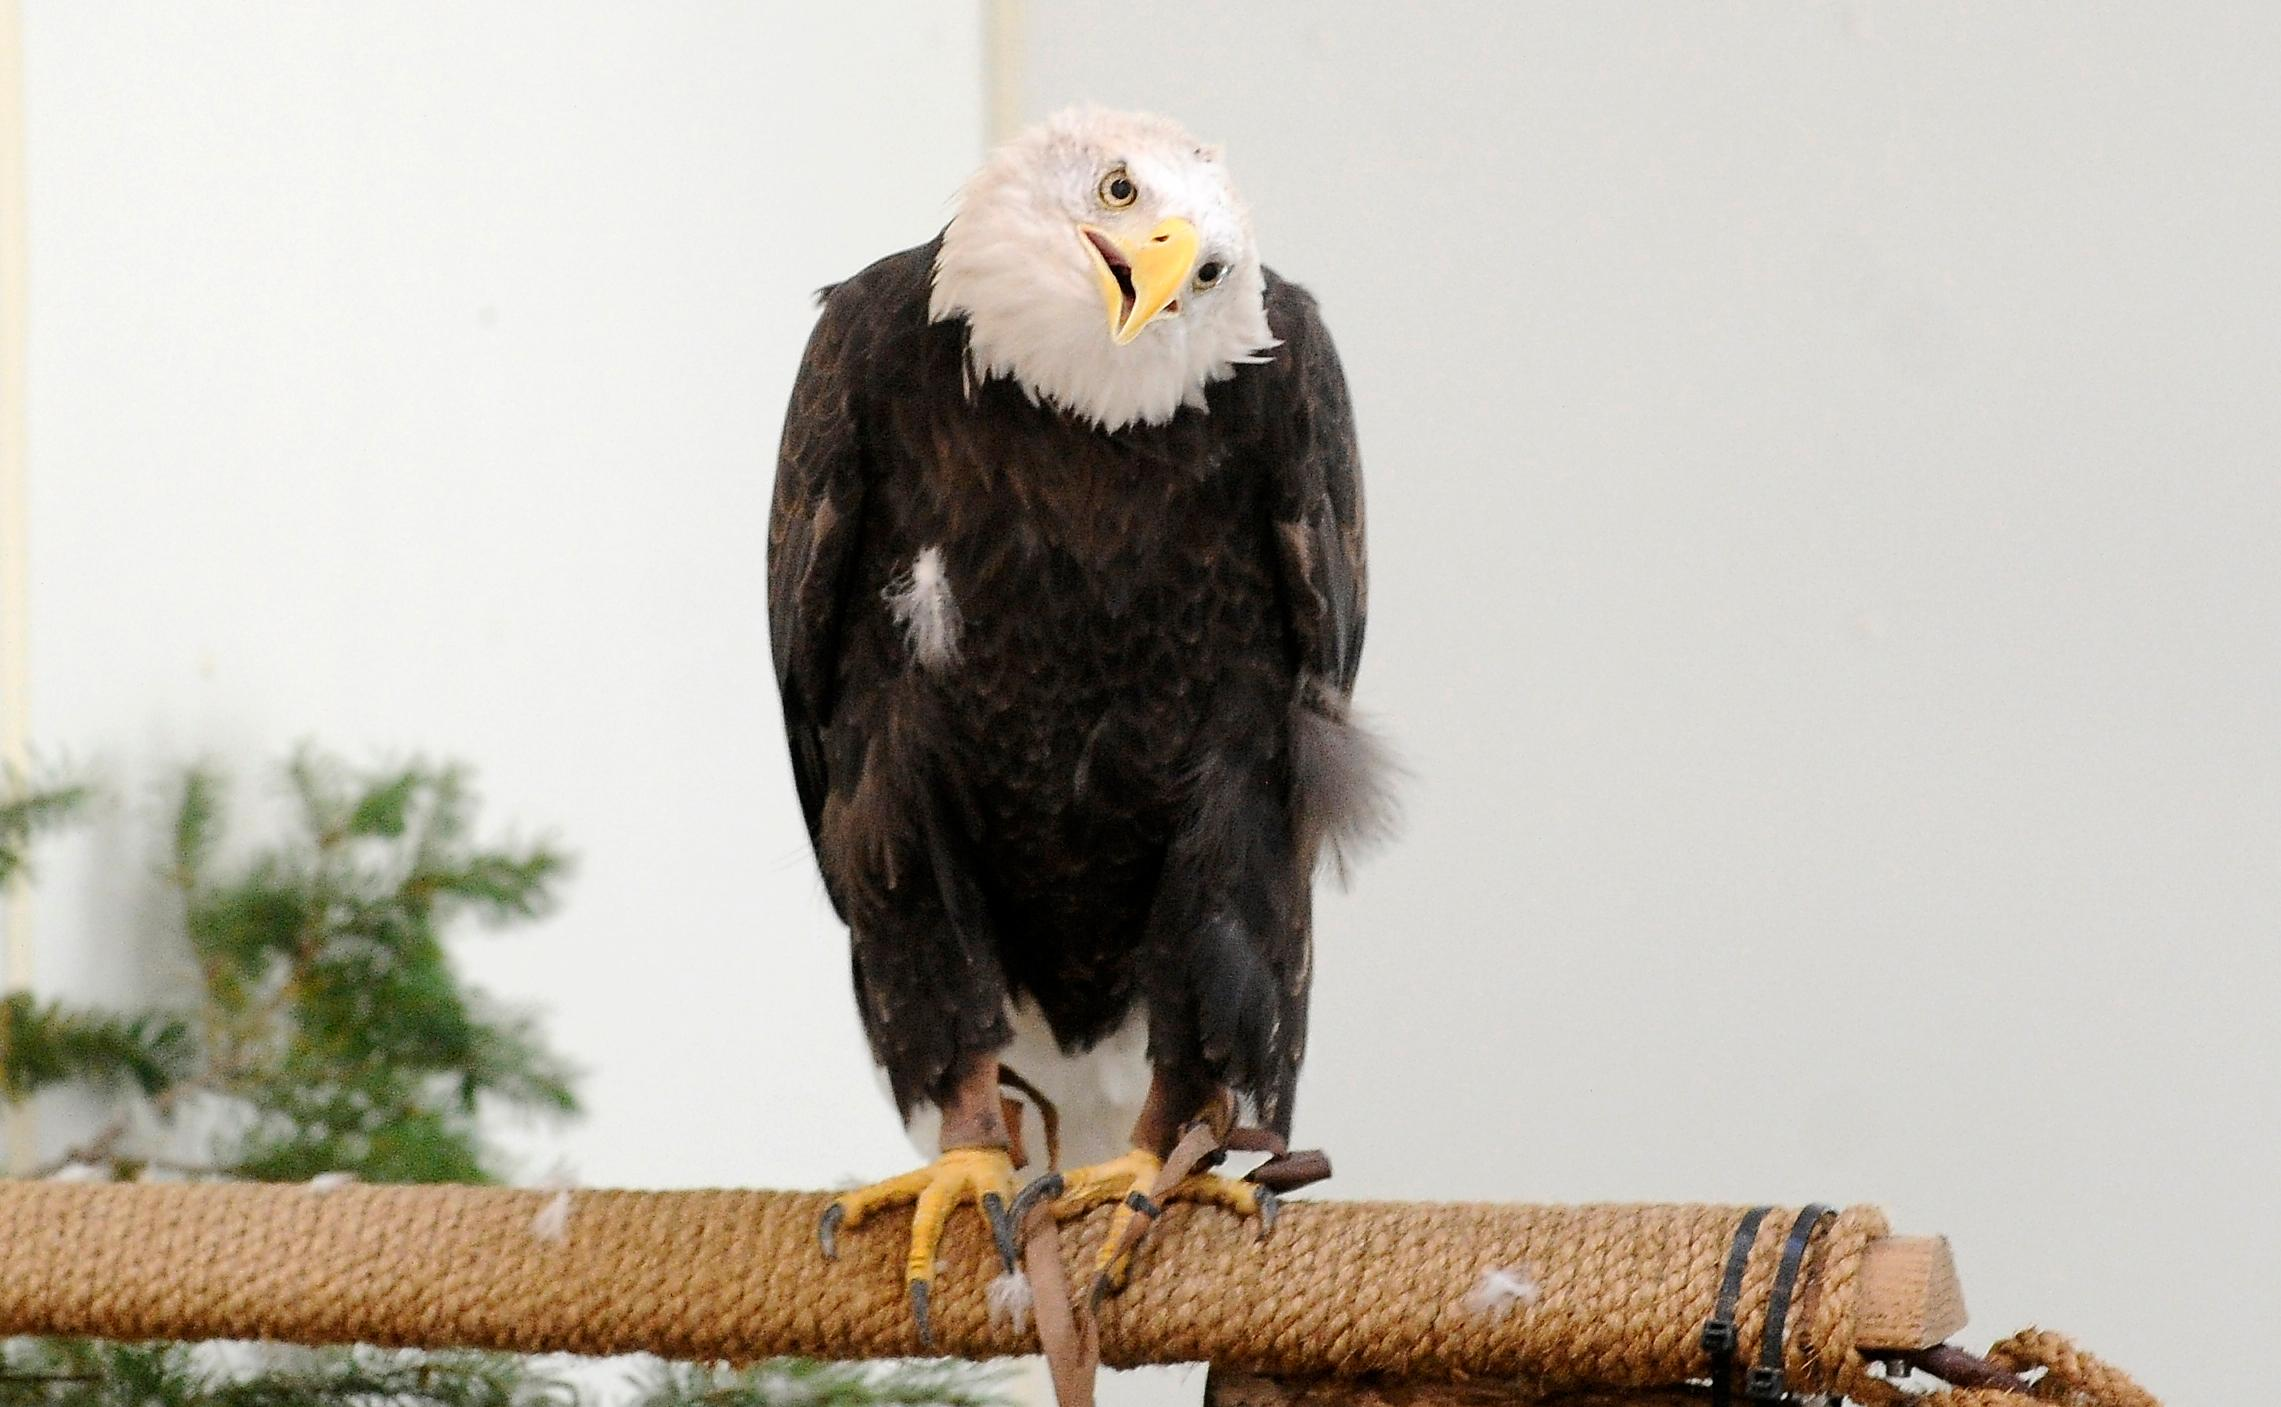 Andy Atkinson / Mail Tribune{ } Defiance the bald eagle at Wildlife Images.